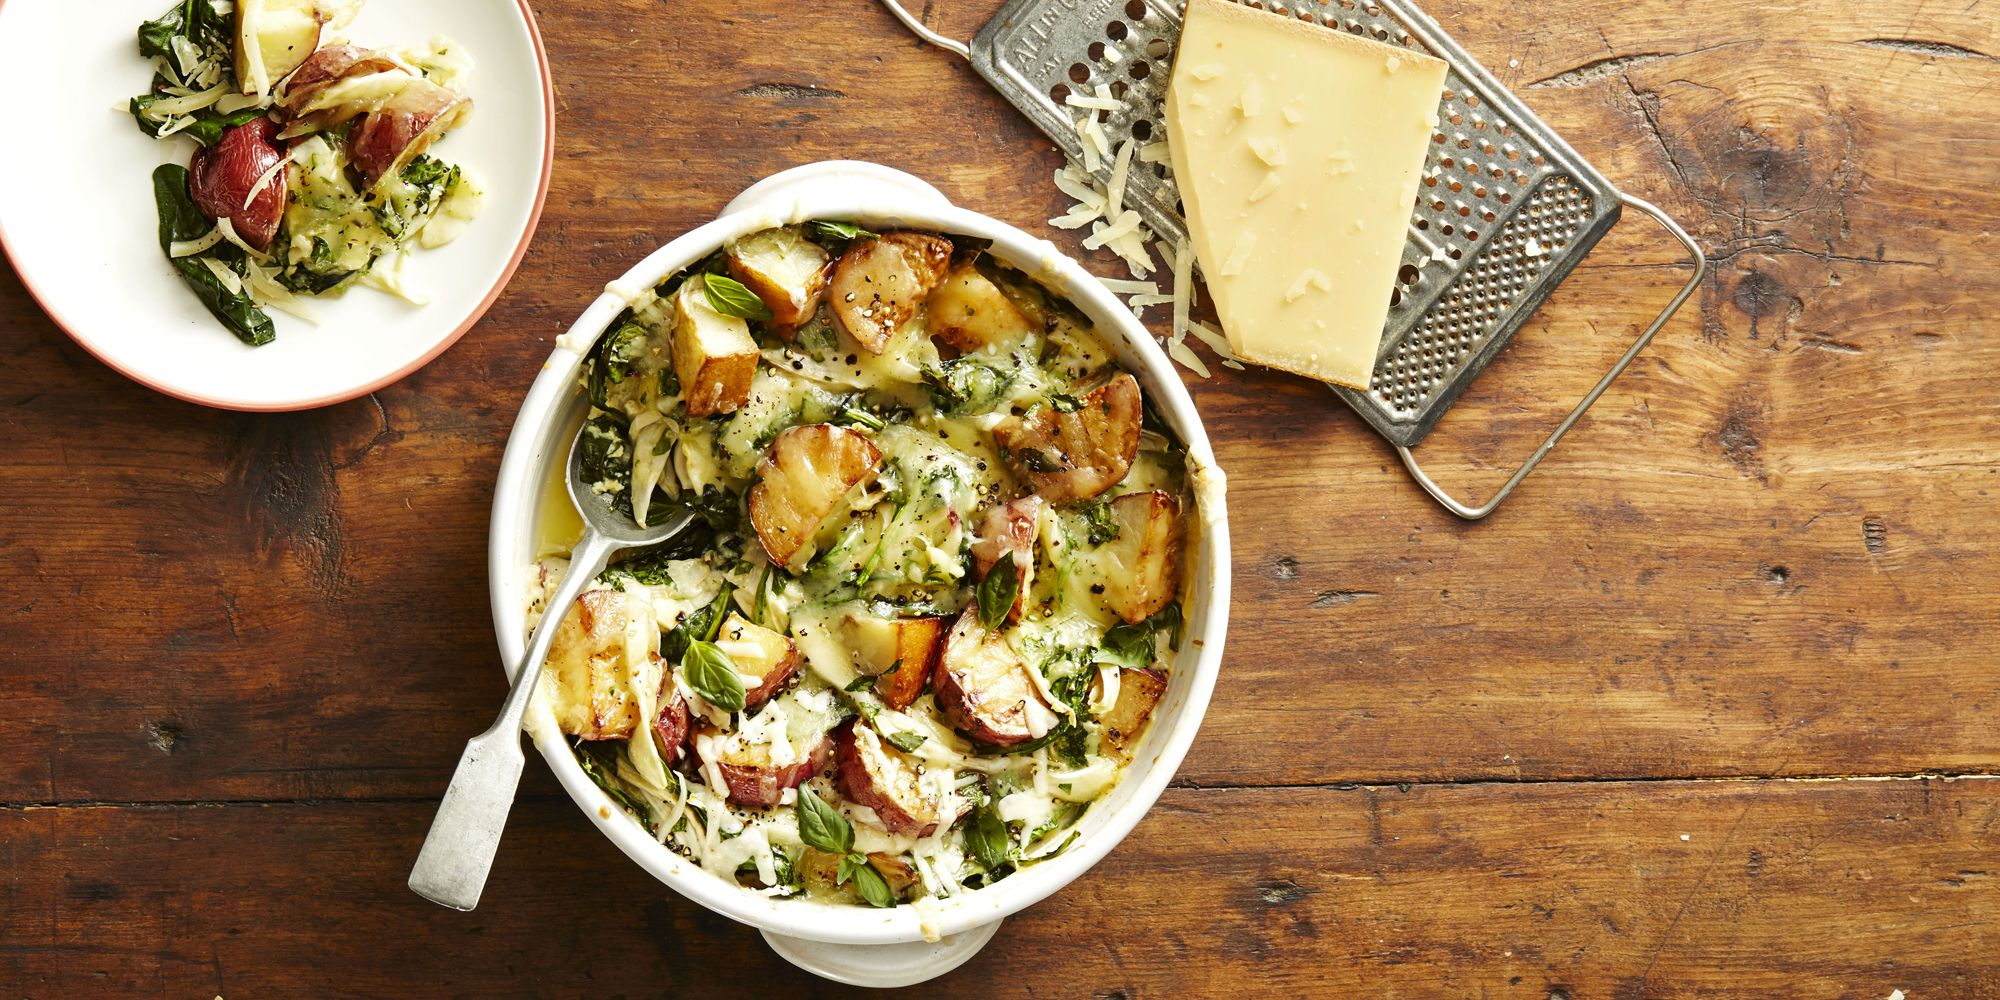 40 Best Christmas Side Dishes - Easy